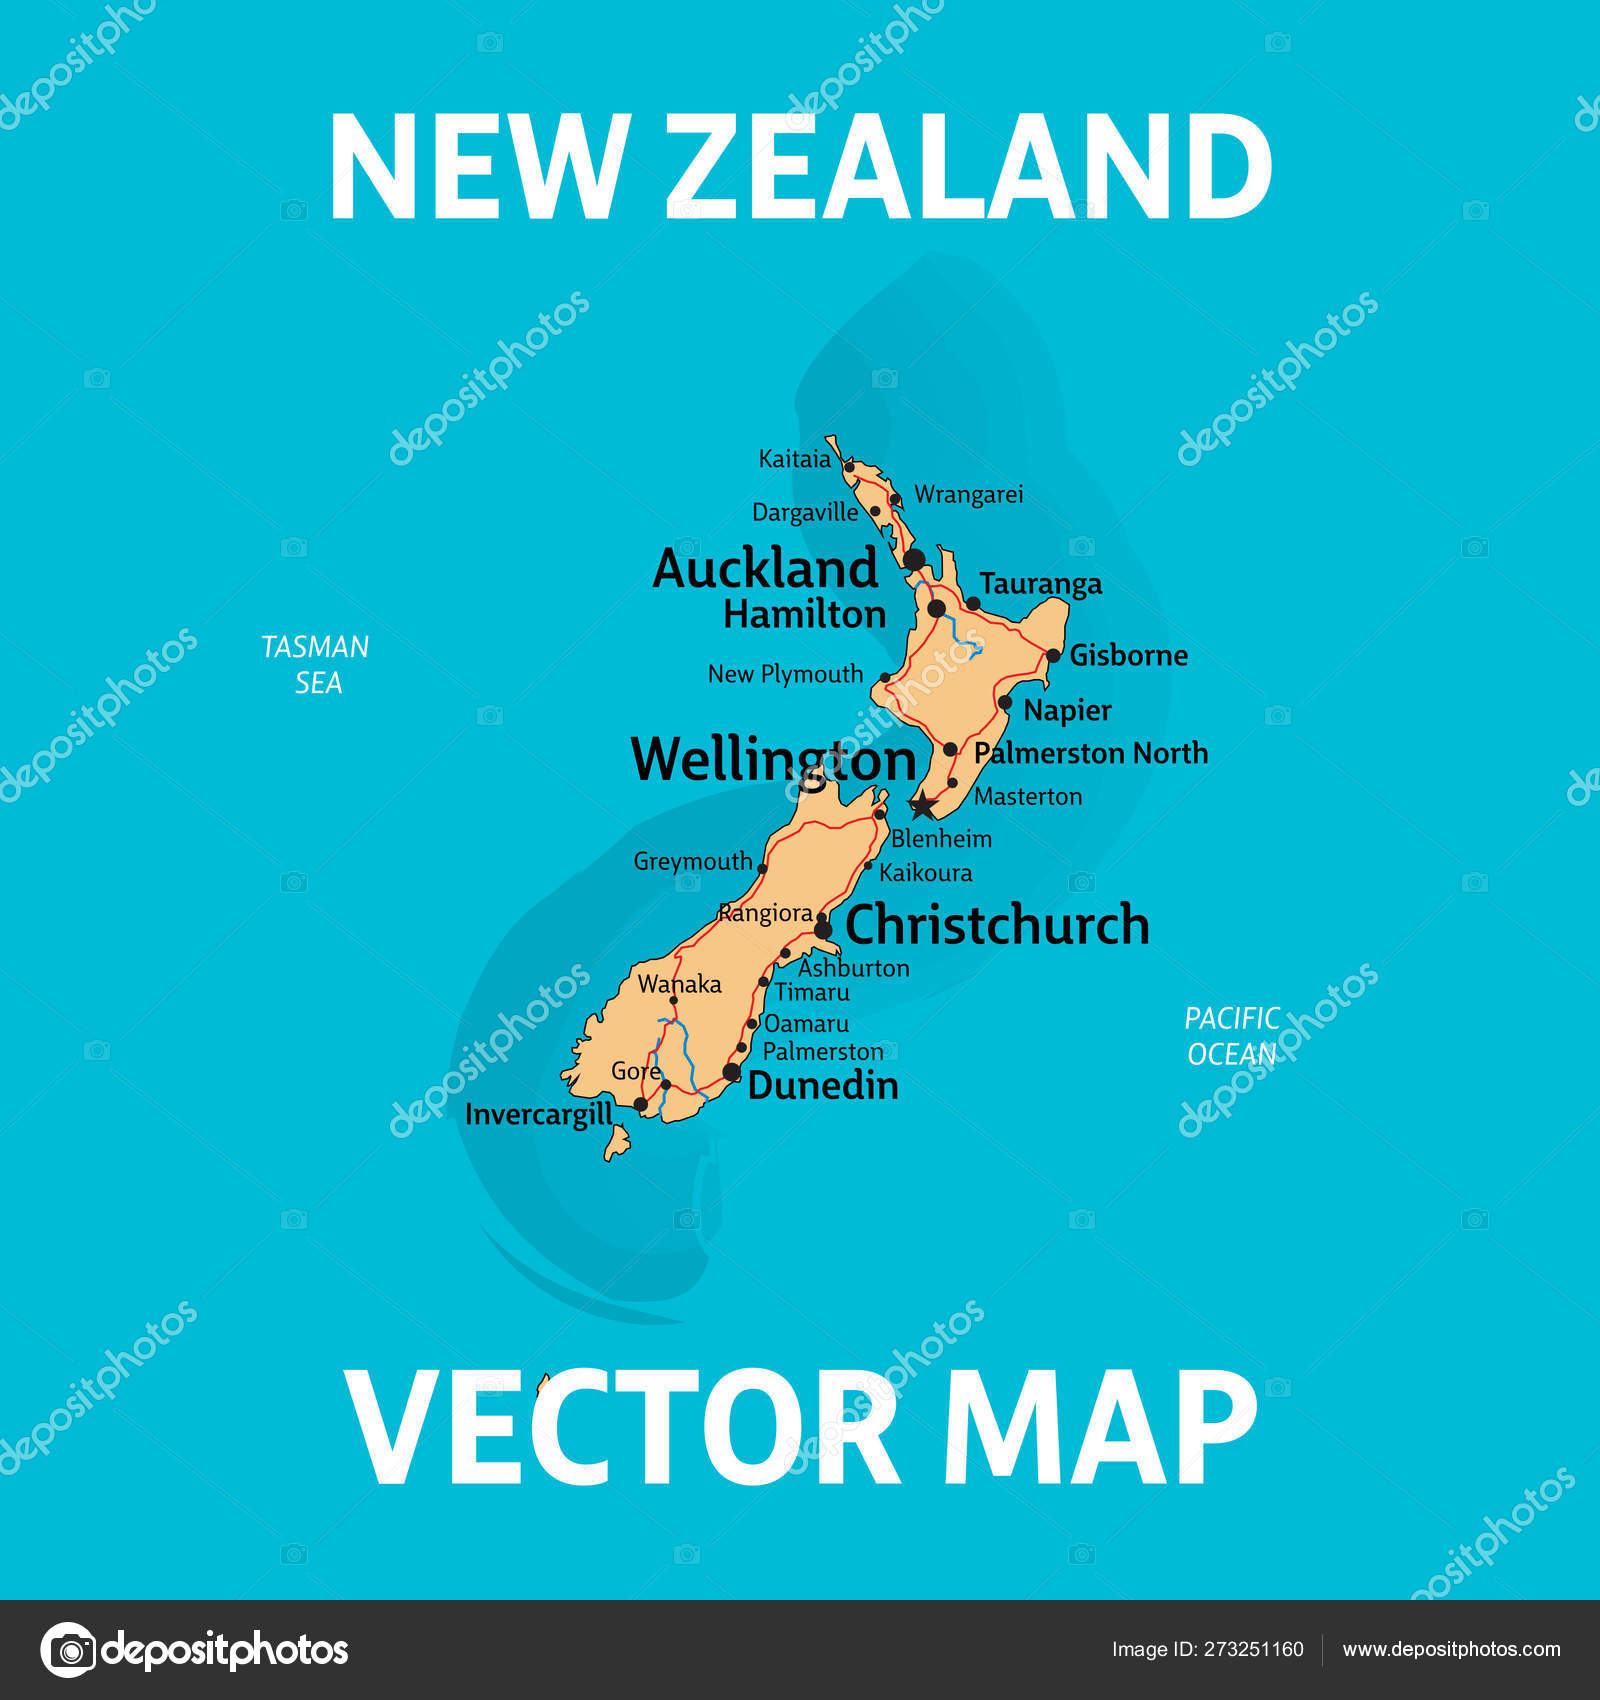 Map Of New Zealand With Cities.Vector Map Of New Zealand With Cities Rivers And Roads On Separ